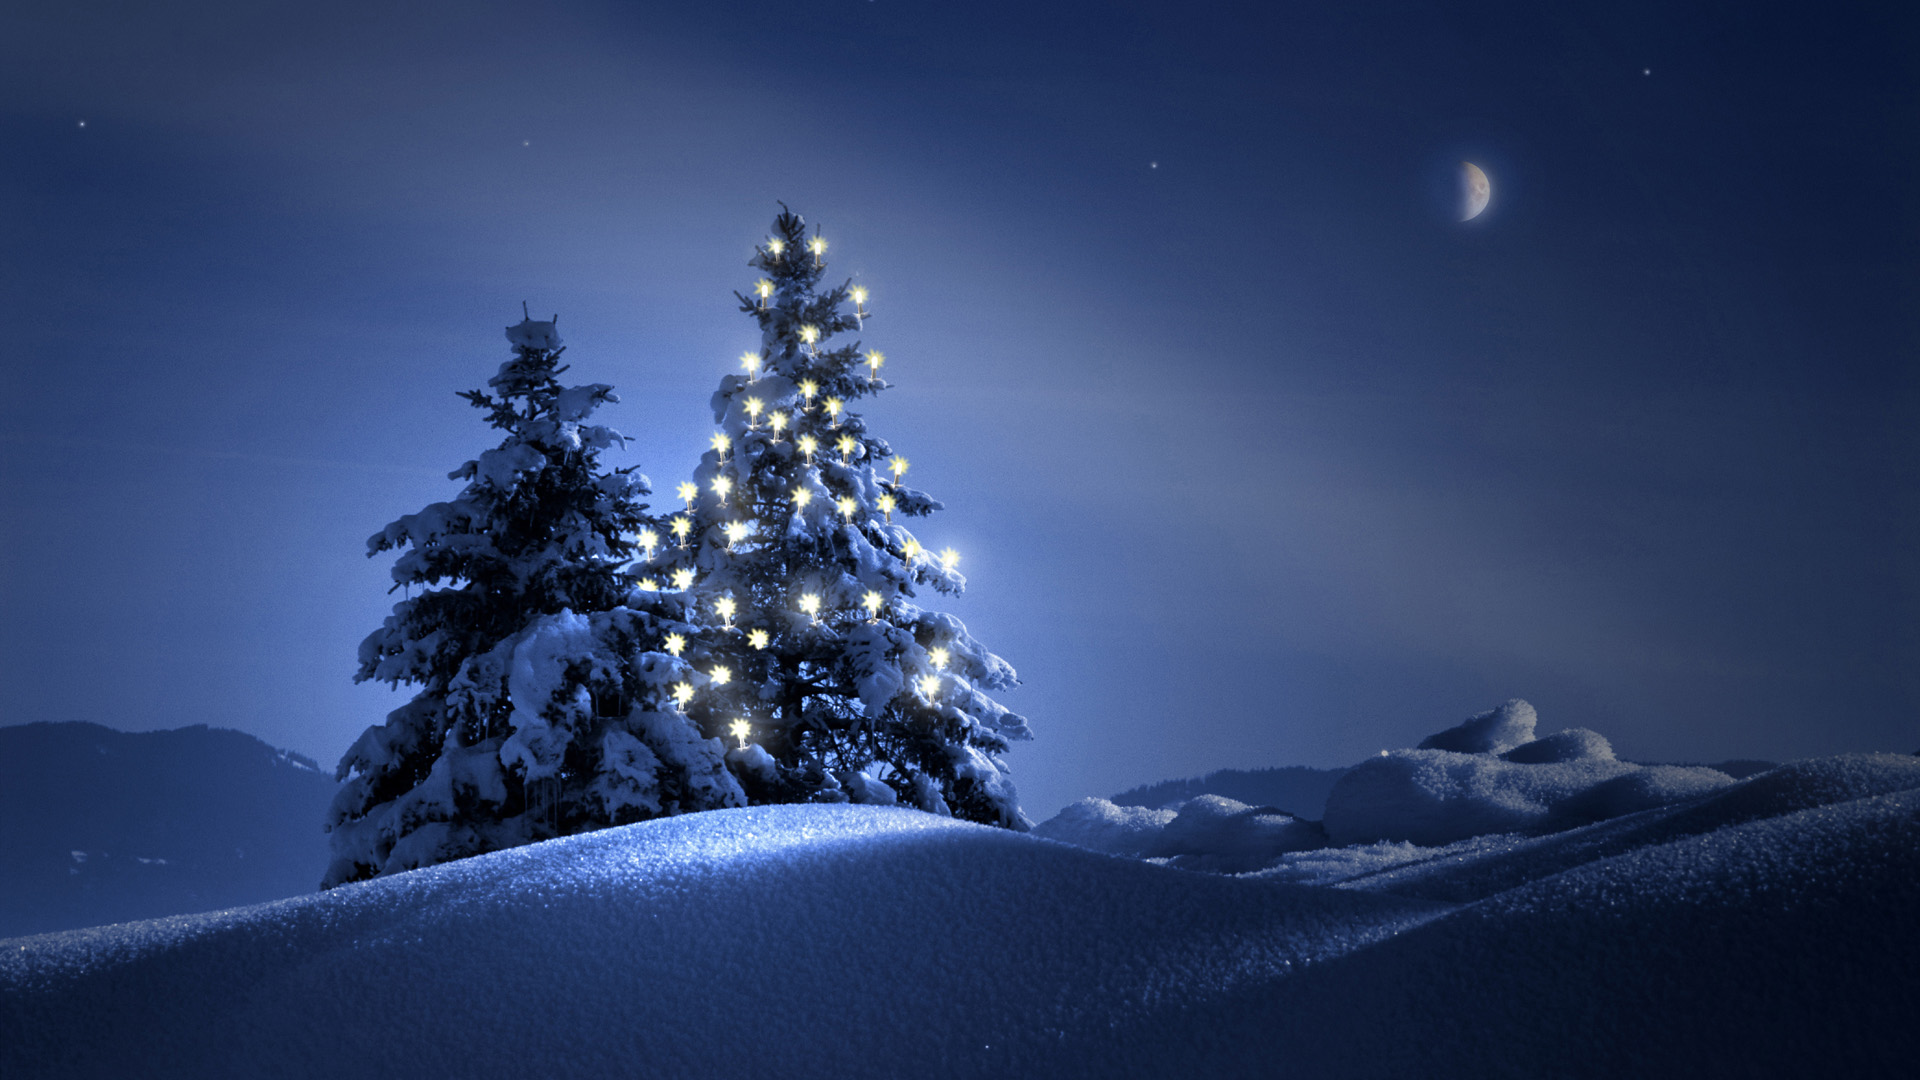 Christmas Tree Wallpapers Desktop Wallpapers 1920x1080